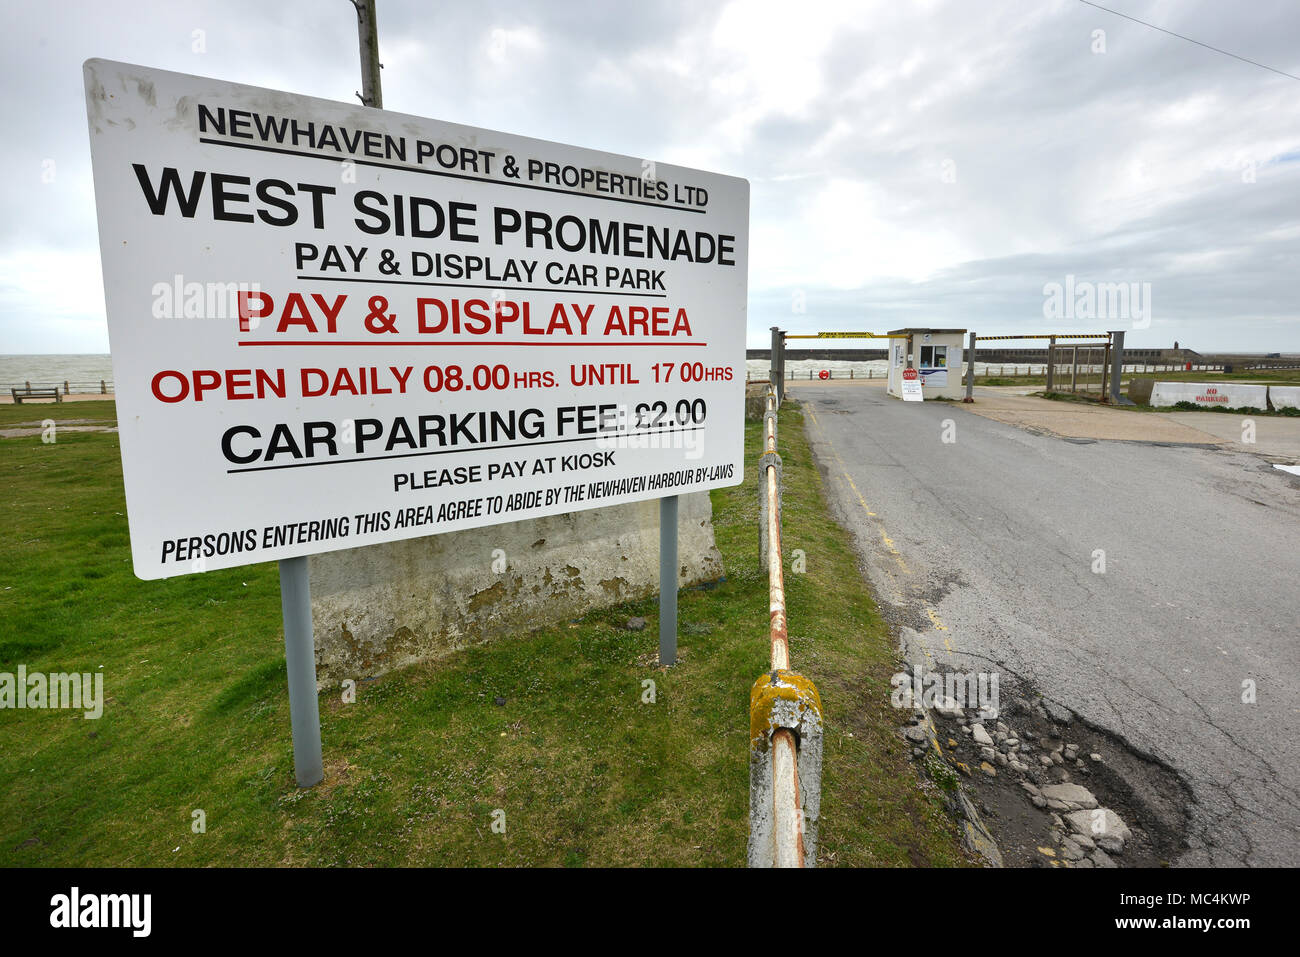 West Side Promenade, Newhaven, East Sussex. - Stock Image